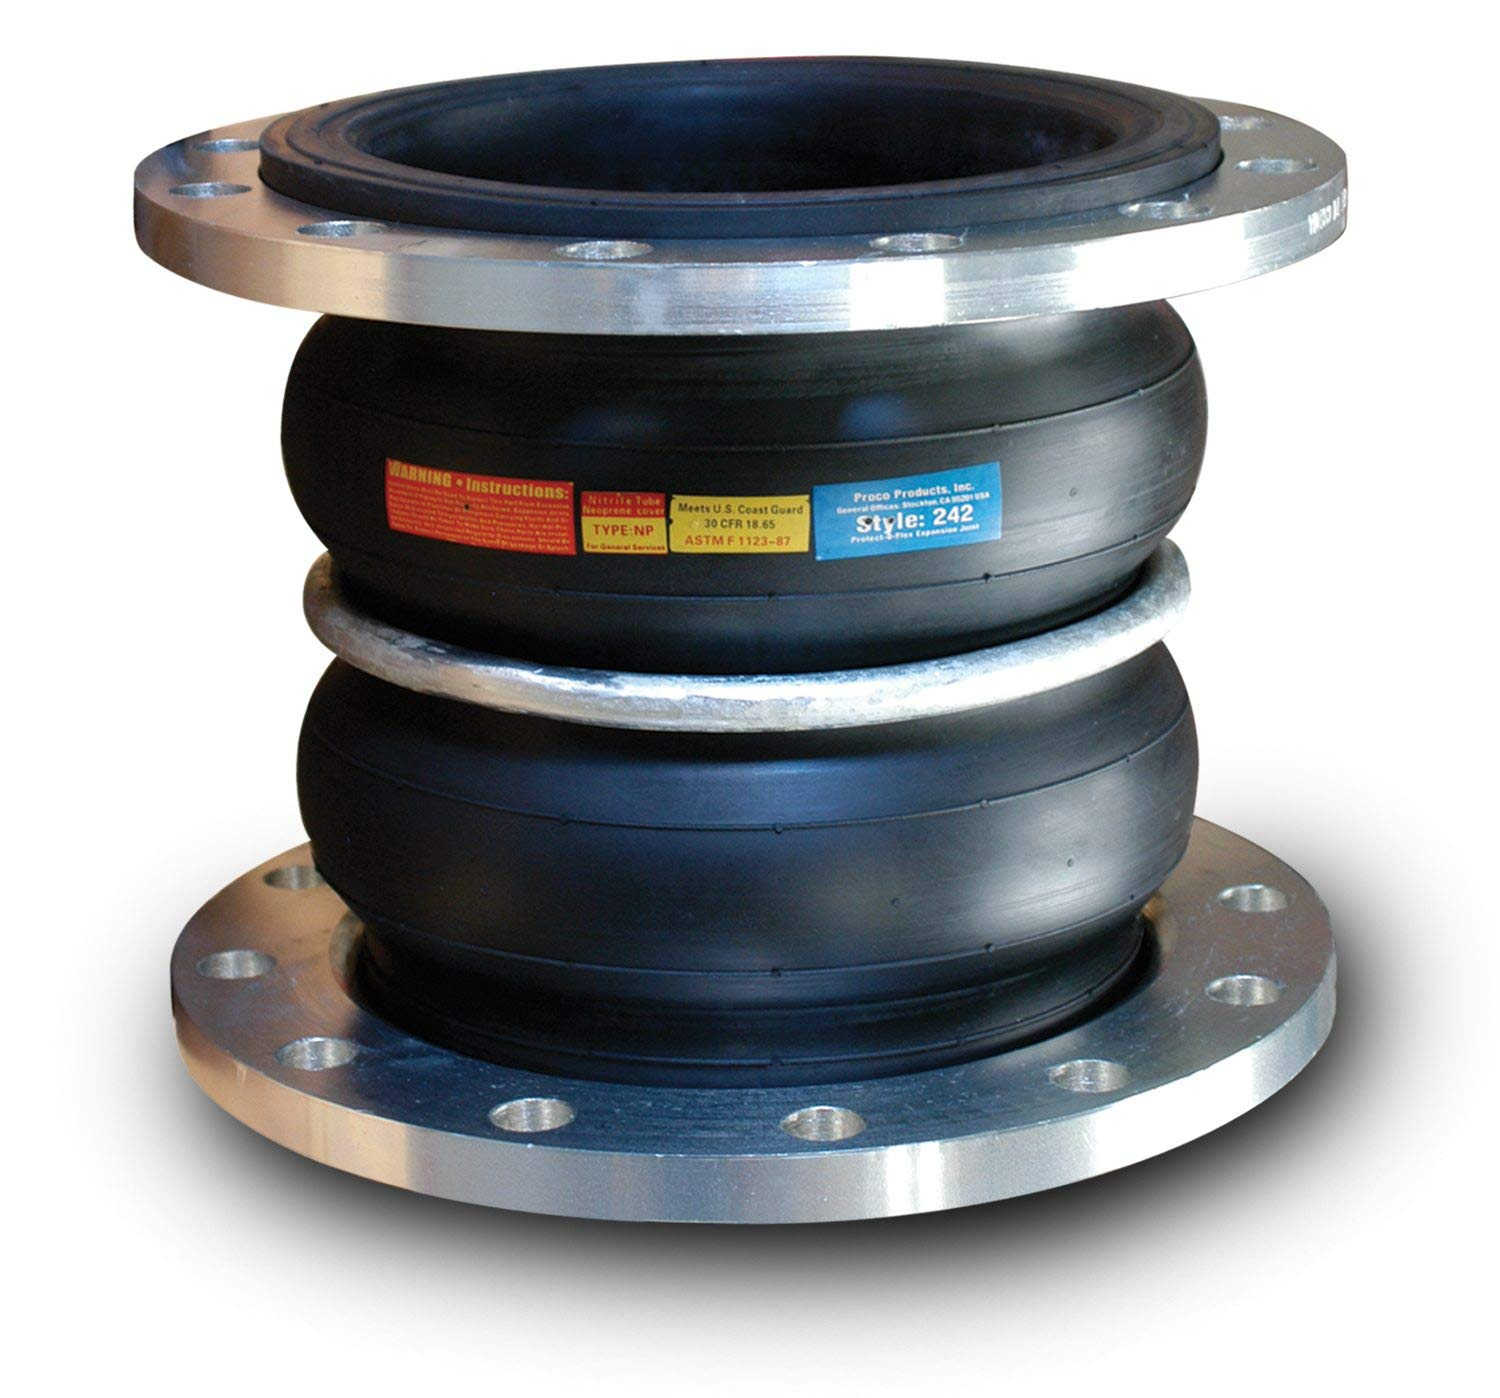 1.25X7 242A//EE Double Arch EPDM Spherical Expansion Joint with 150# Floating Flanges 242A Proco Products Inc 1.25 x 7